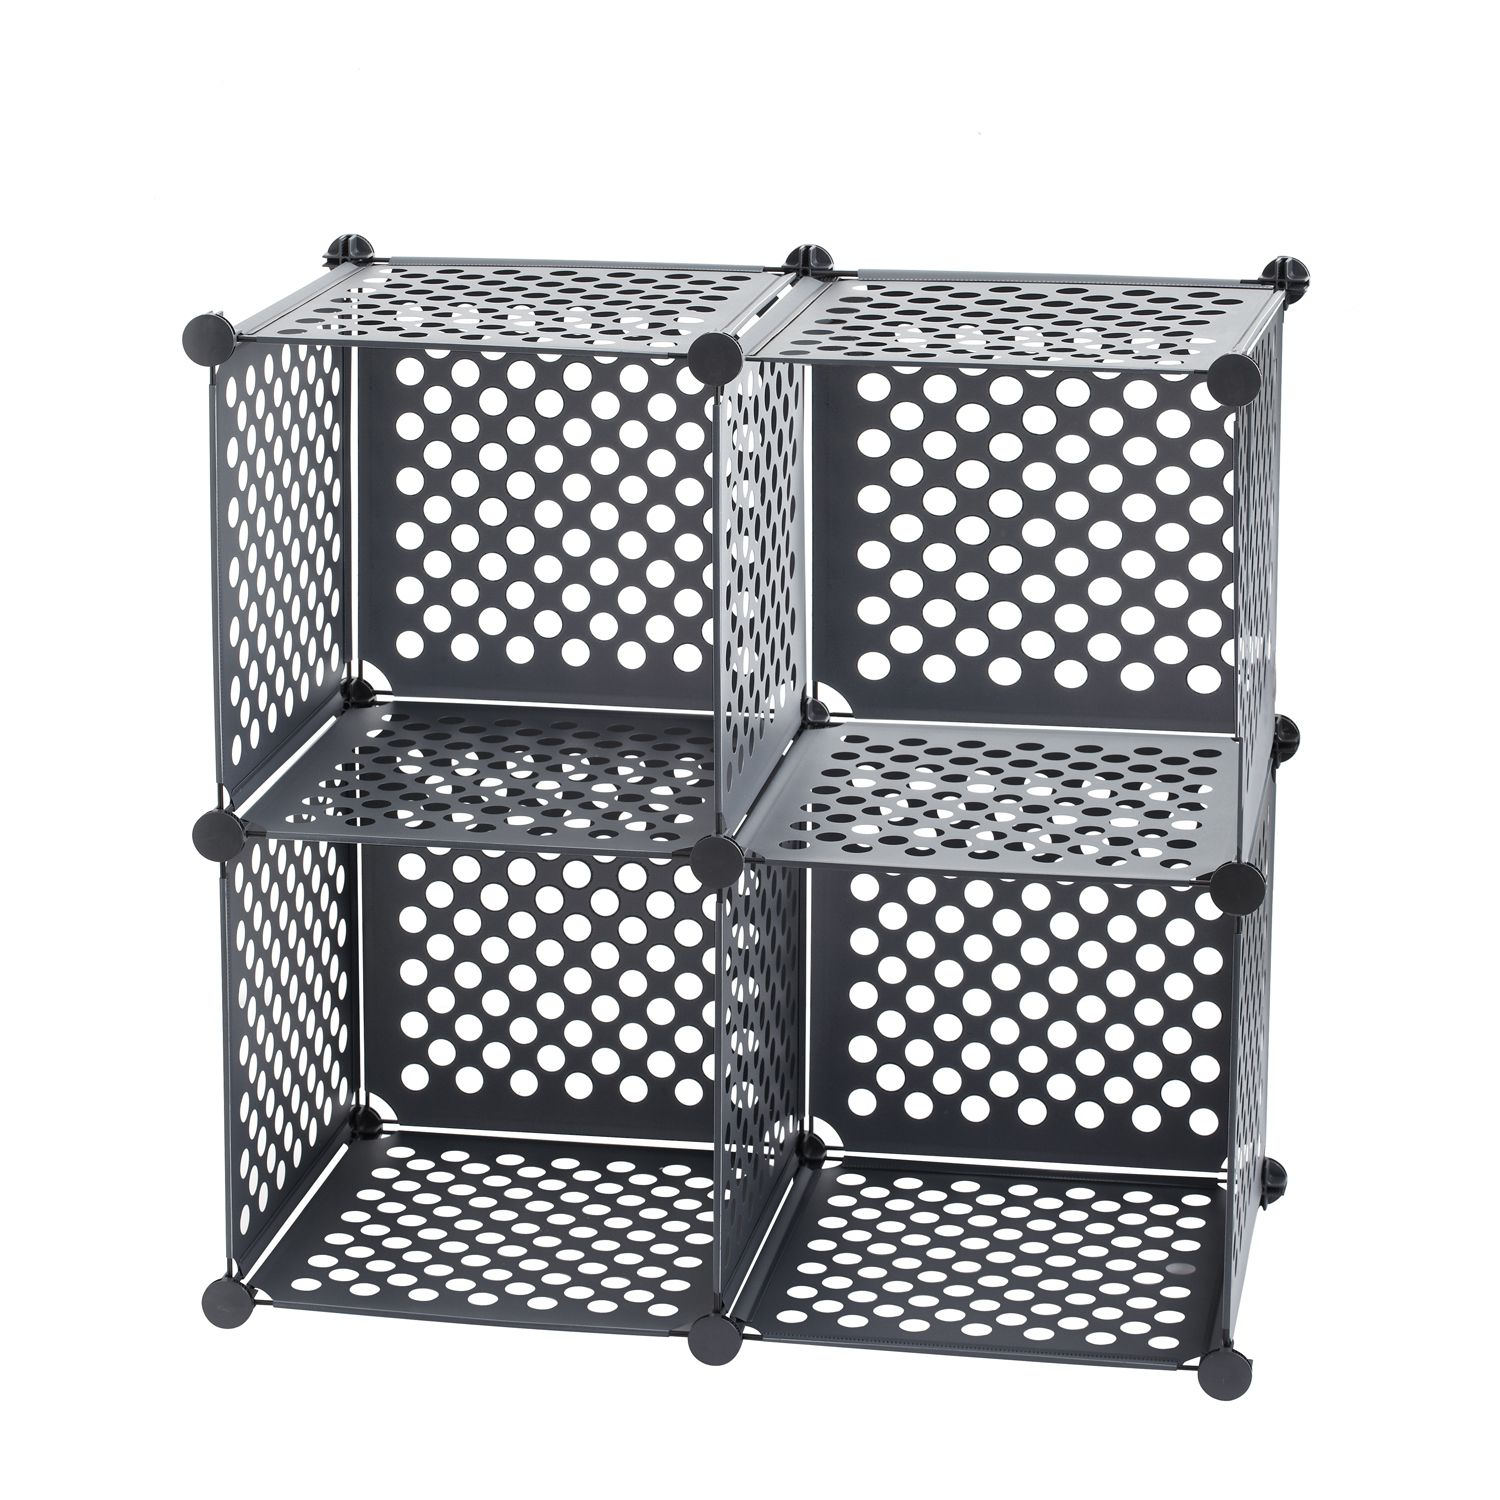 Stackable Storage Cubes  sc 1 st  Kohlu0027s & Stackable Plastic Cubbies u0026 Cube Storage | Kohlu0027s